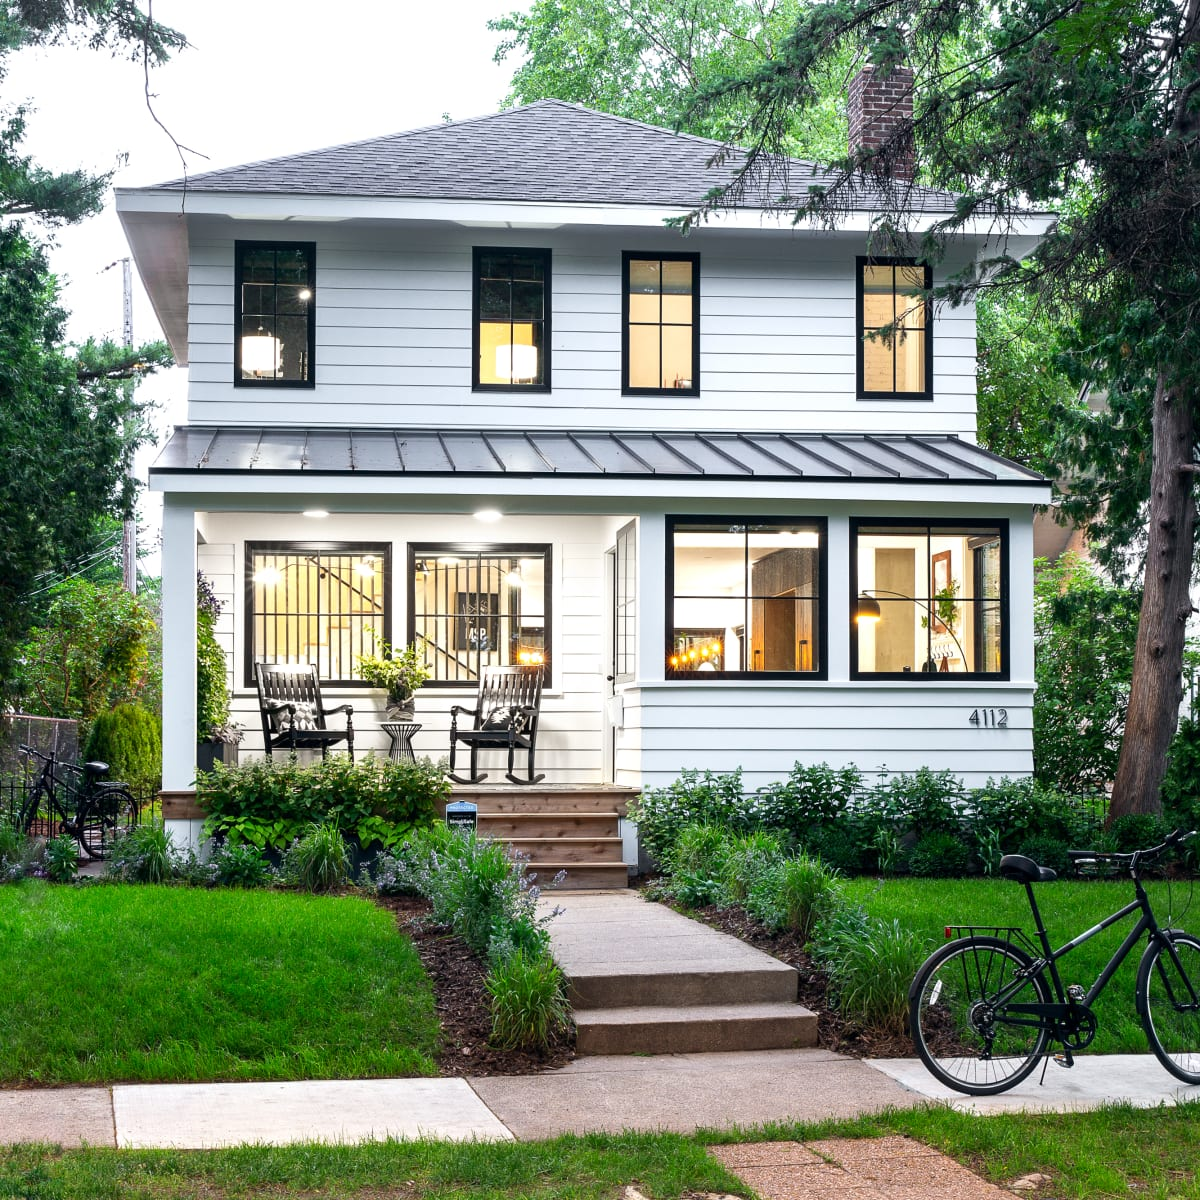 Hgtv S Contest Giveaway Of A Minneapolis Home Starts Tuesday